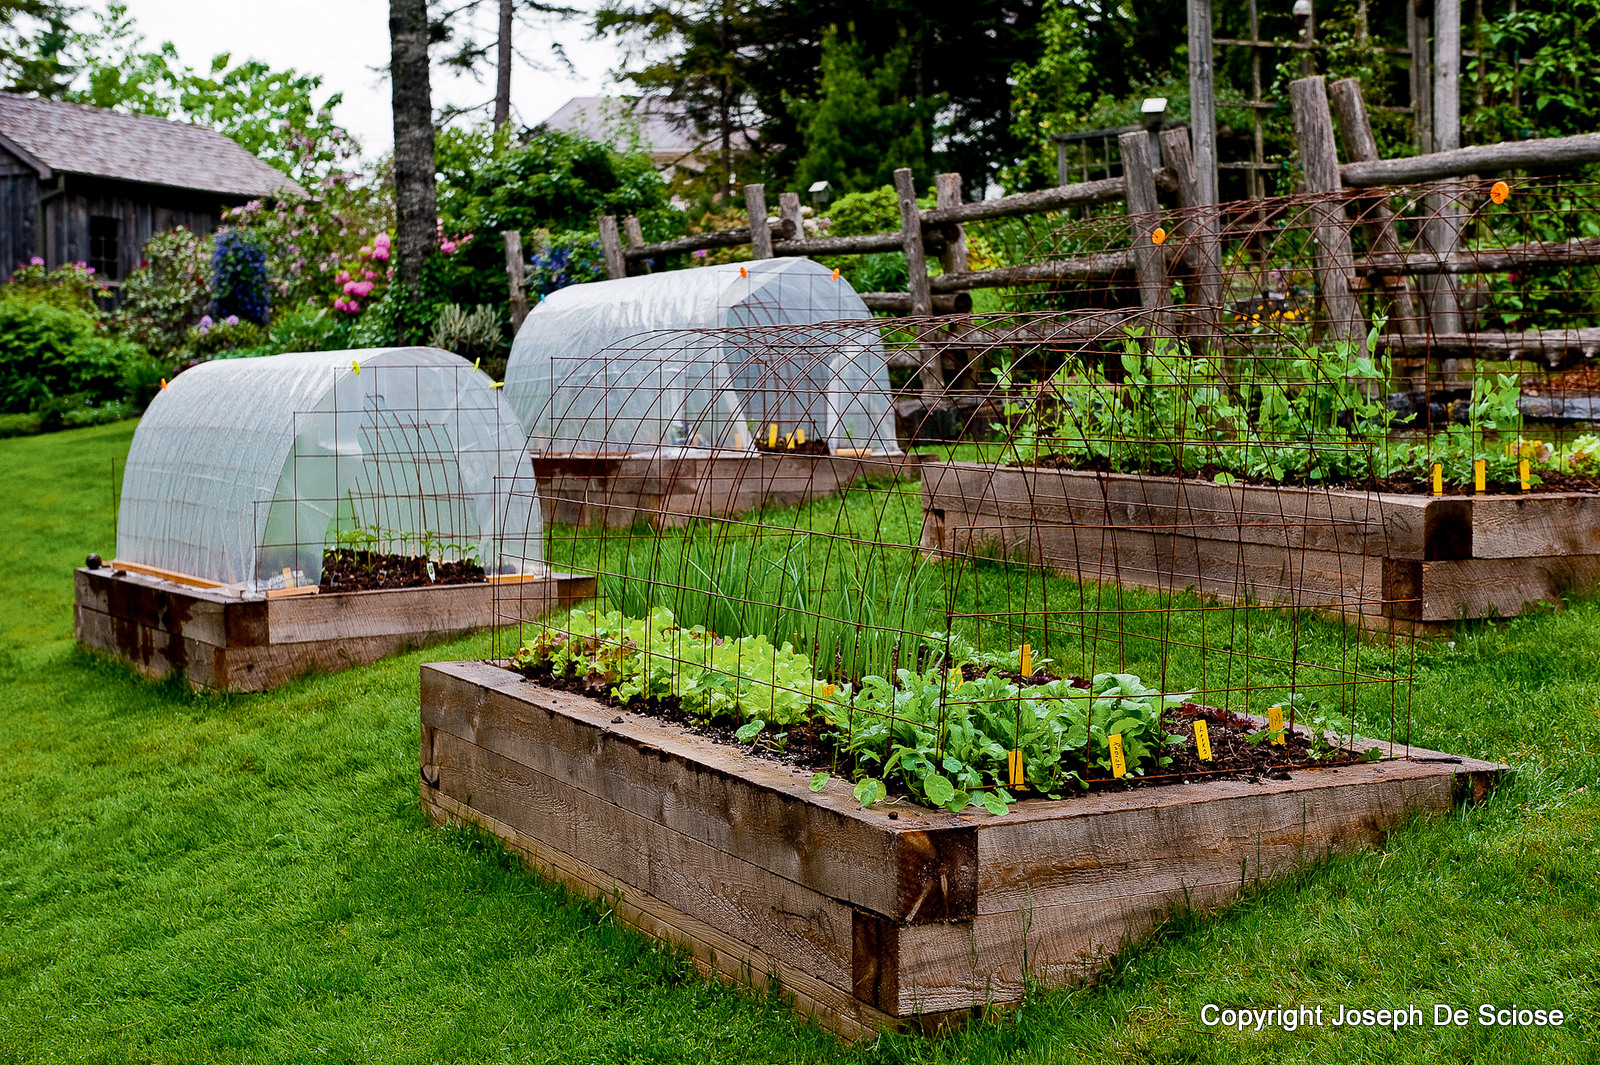 Vegetable Garden Planting Ideas Part - 25: 2) Why Do You Think More Gardeners Donu0027t Grow Vegetables ...